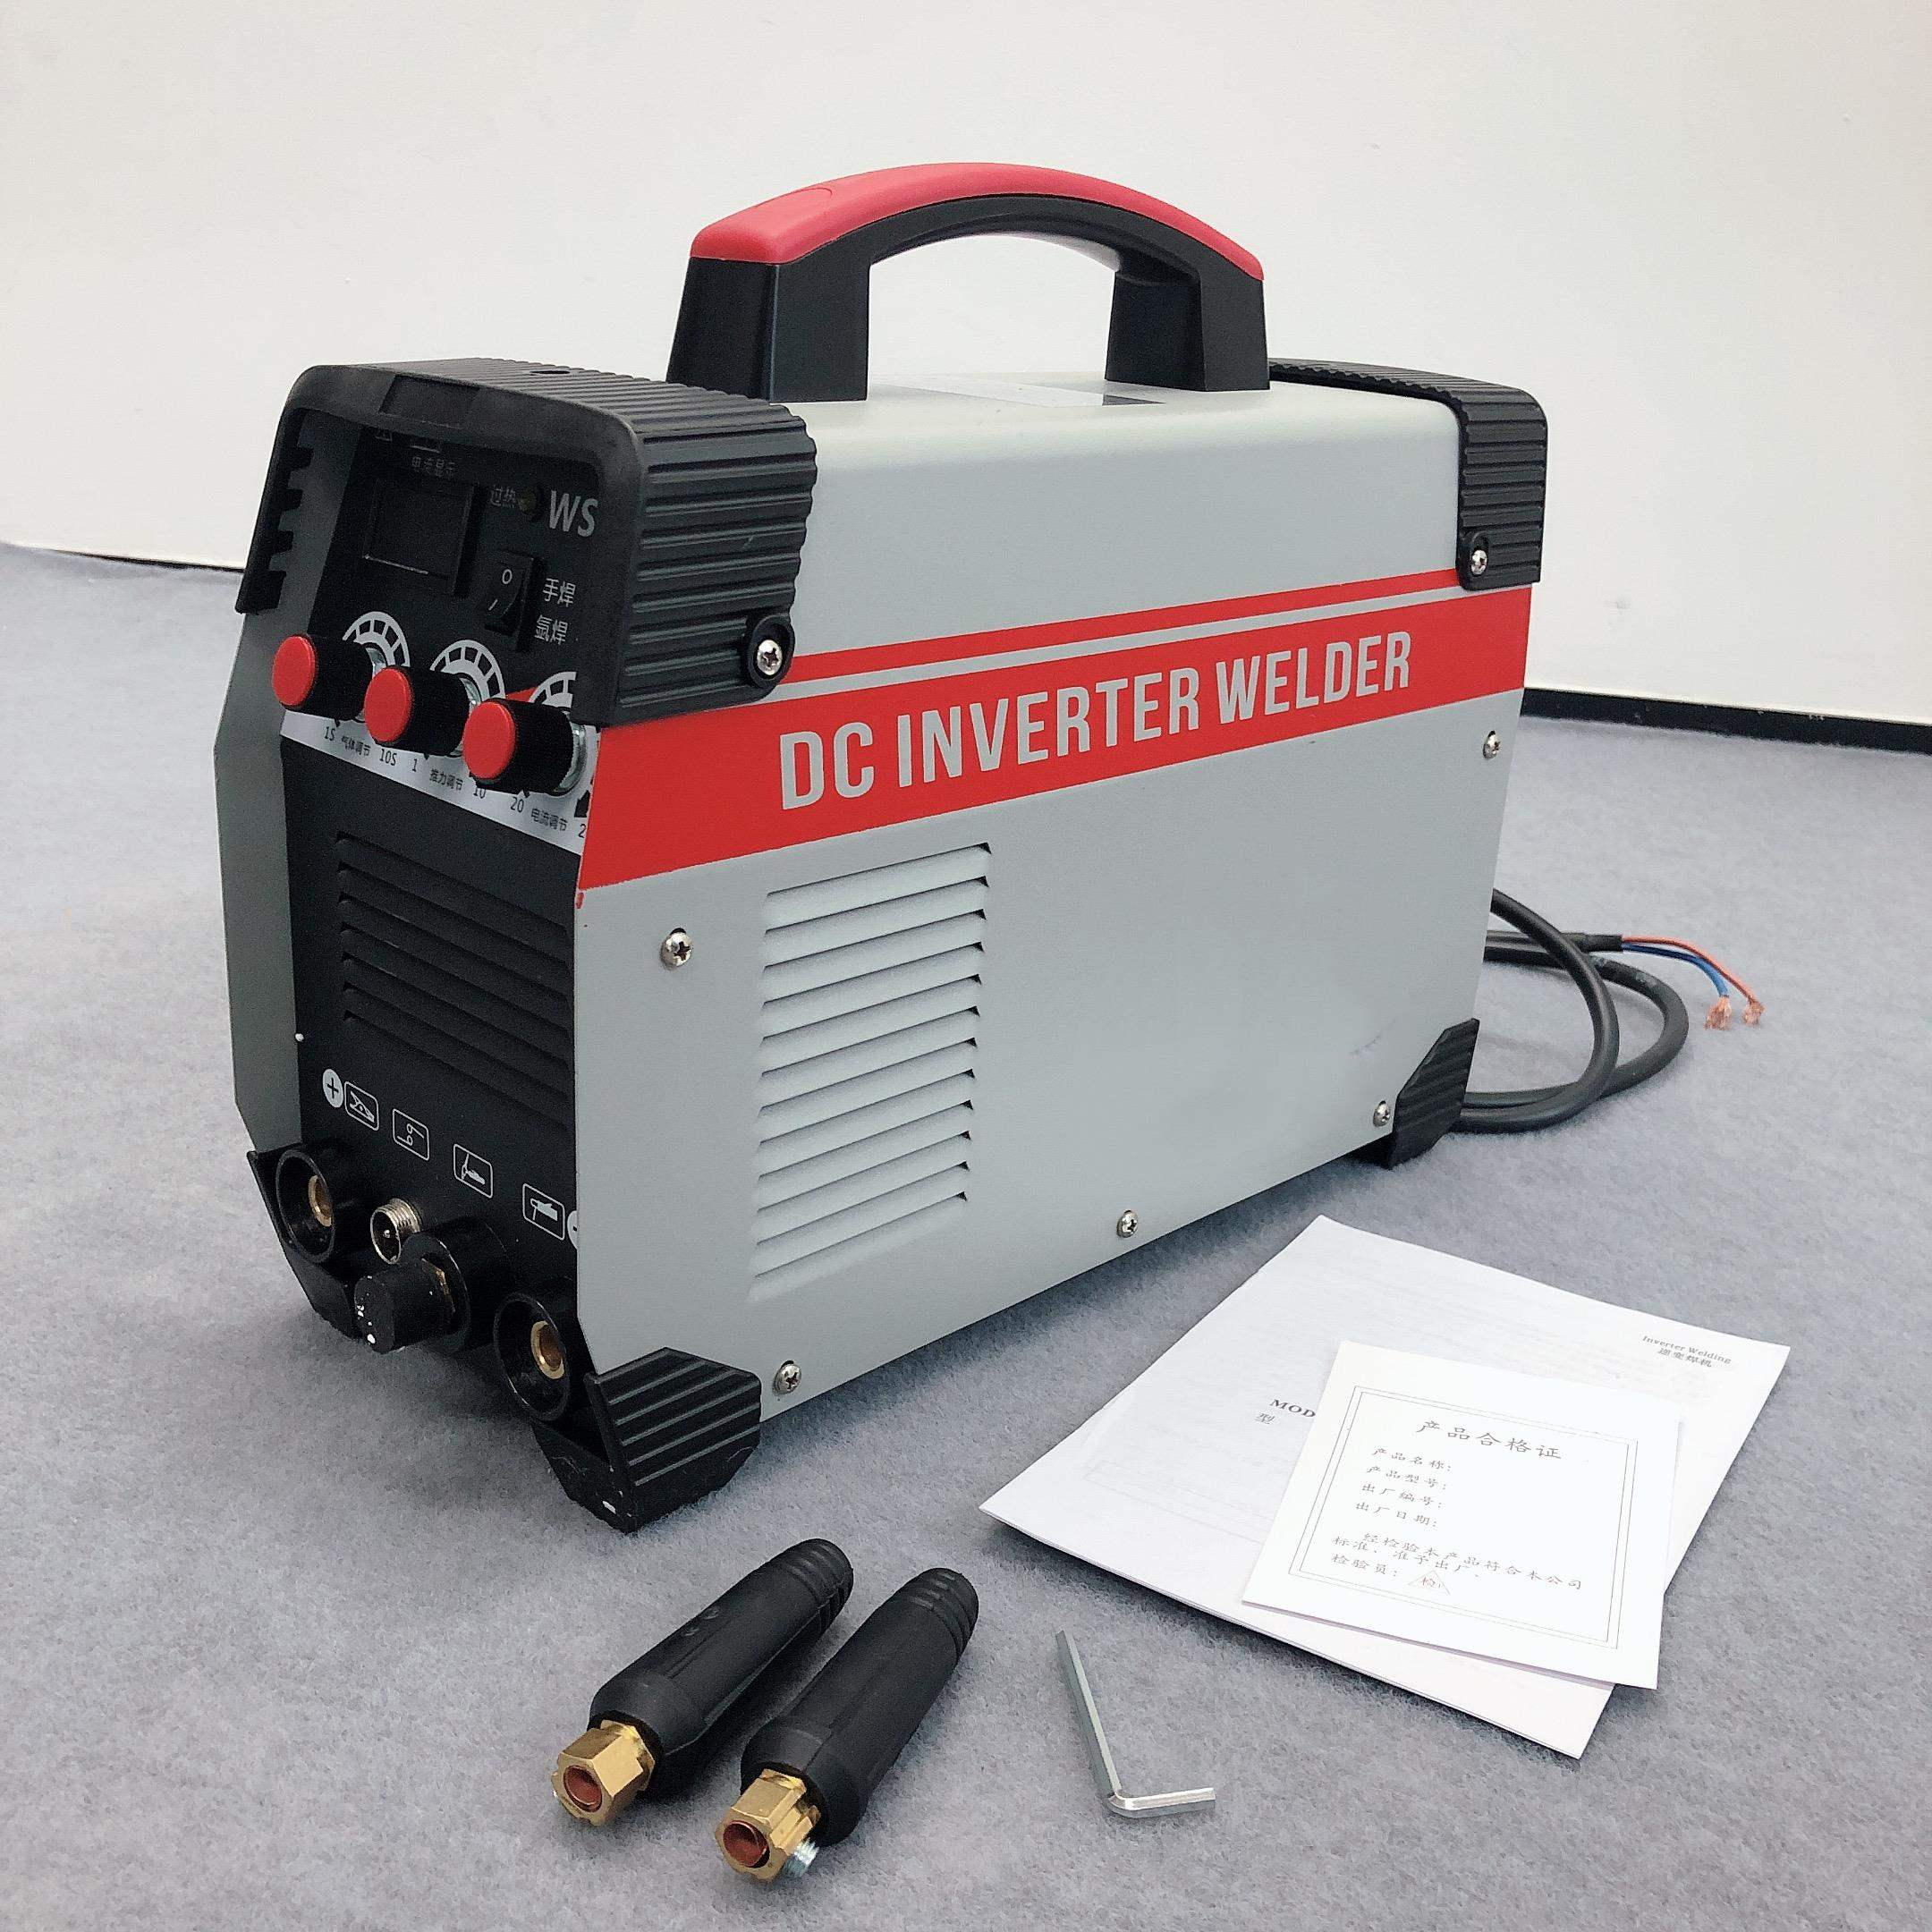 WS-250 argon welding machine 220V electric welding / argon arc welding dual purpose welder